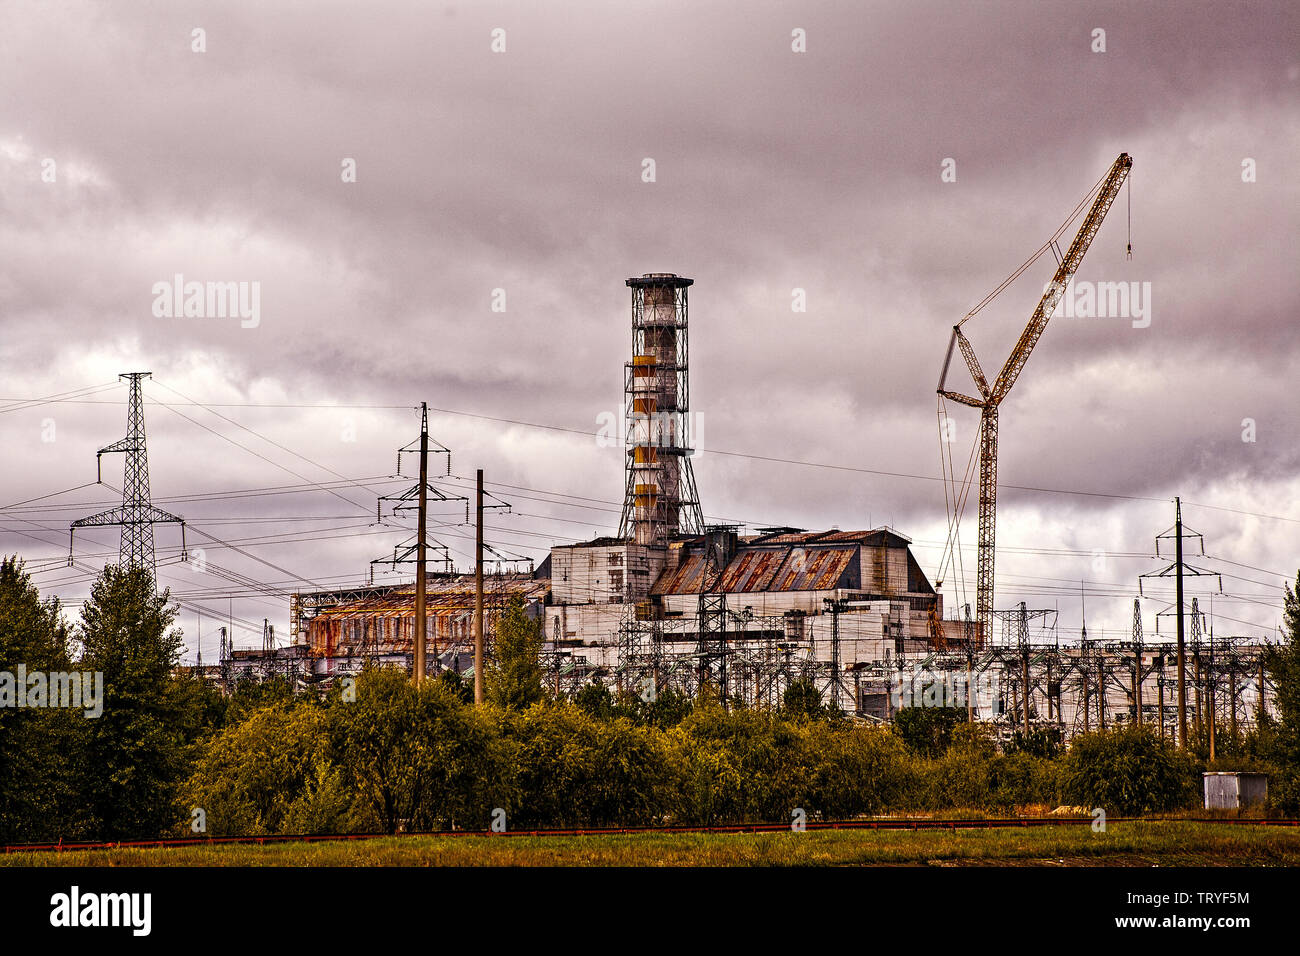 Chernobyl, Pripryat Ukraine. This is Reactor 4, THE  reactor that caught fire and caused the nuclear accident which made Chernobyl a household name, and ultimately caused the fall of the Berlin Wall. It sits on the Pripryat River, which was used to cool the core. It is one of six reactors all close together. The Chernobyl Nuclear Power Plant is in the north of Ukraine, very near the border with Belarus. Chernobyl itself was overtaken in size and importance by the new Atomic City of Pripryat, just a couple of Kilomteres from this reactor. Stock Photo